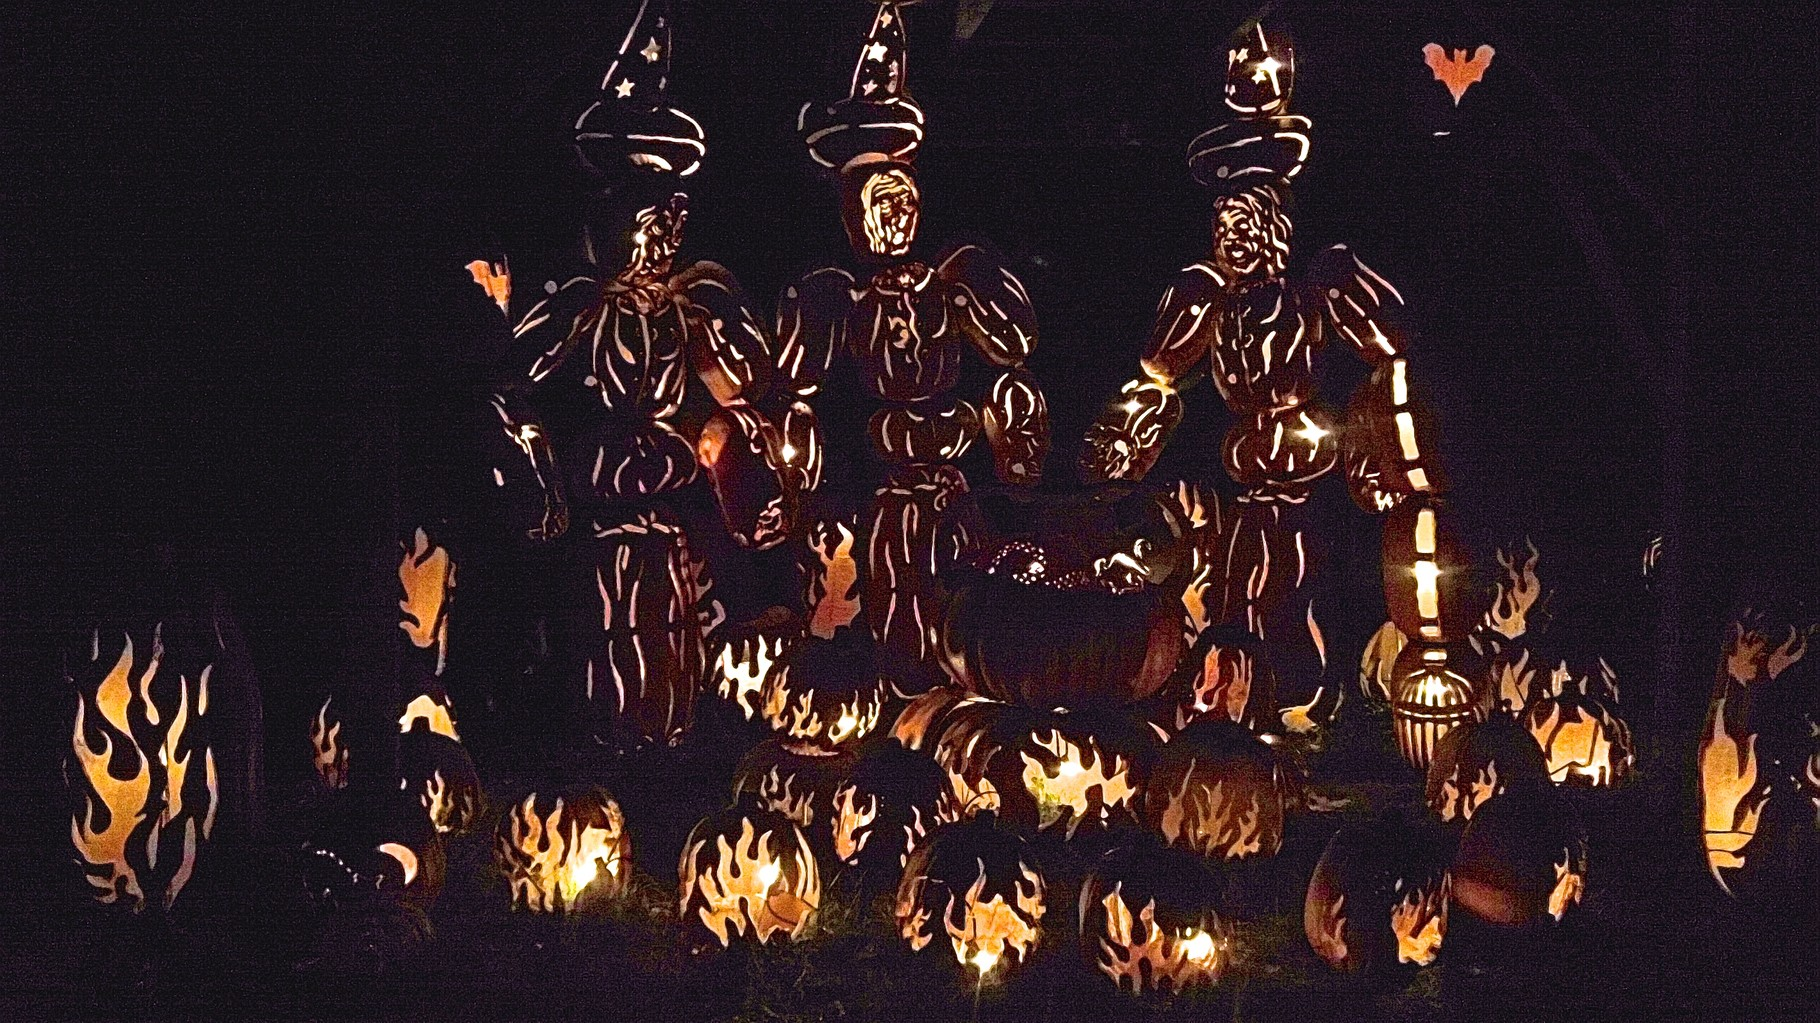 Blaze, 10-25-15   10,000 carved pumpkins...here is the witches' cauldron